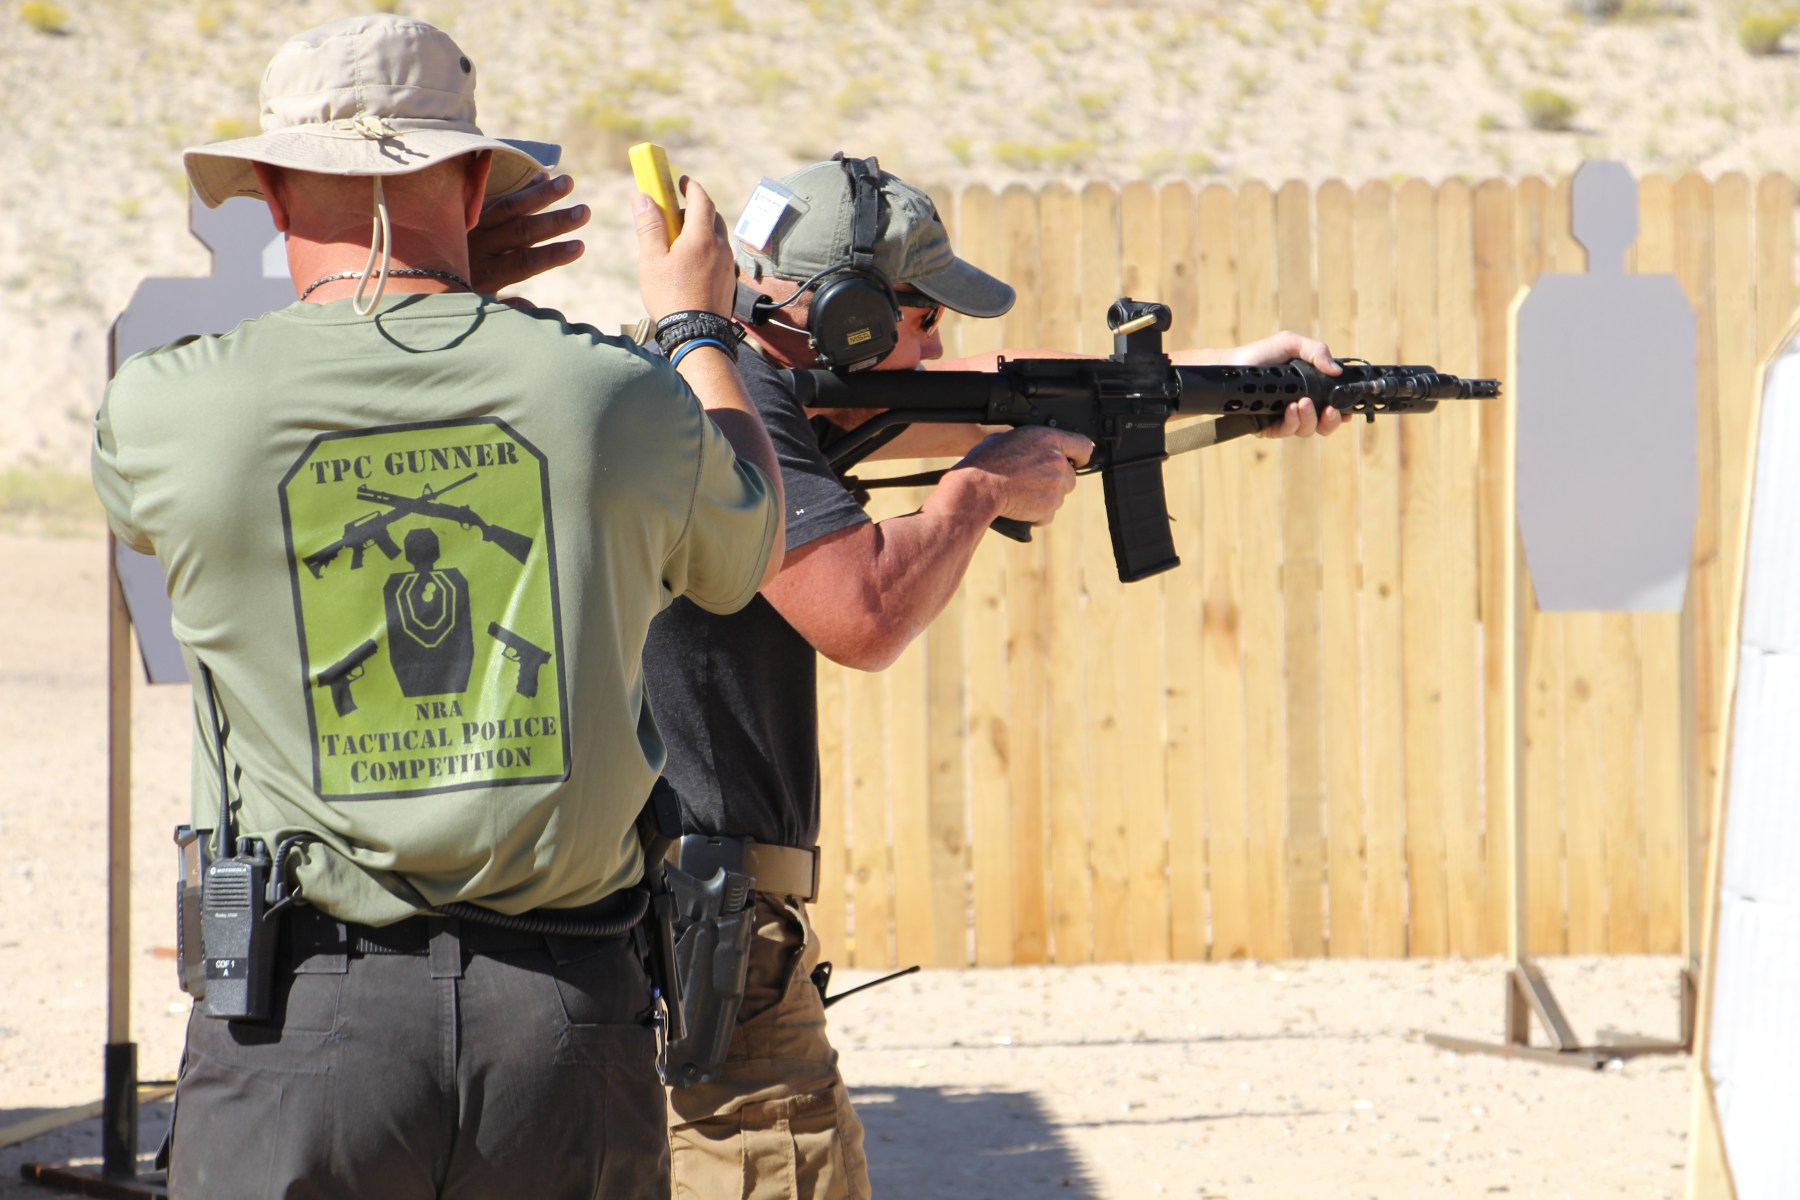 Ammoland: Kahr Firearms Group Sponsors NRA Tactical Police Competition July 20-21